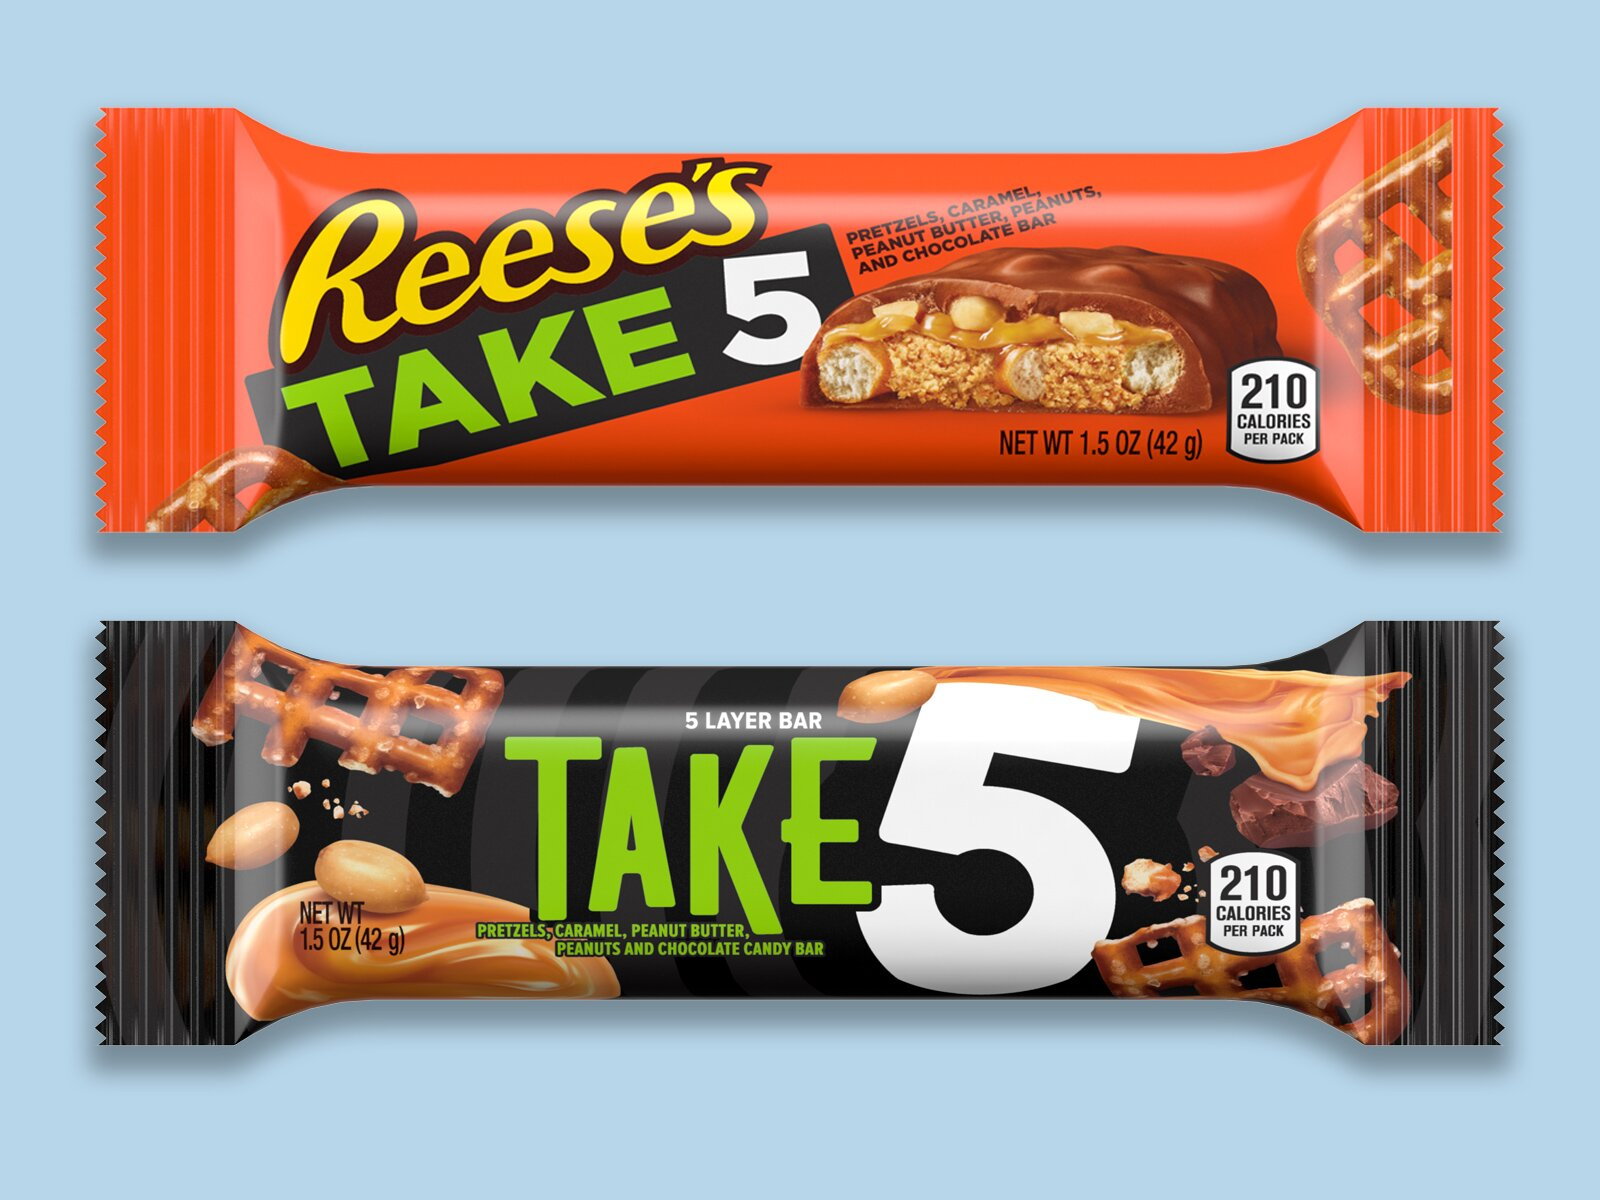 Hersheys Take5 Candy Bar Is Officially A Reeses Product